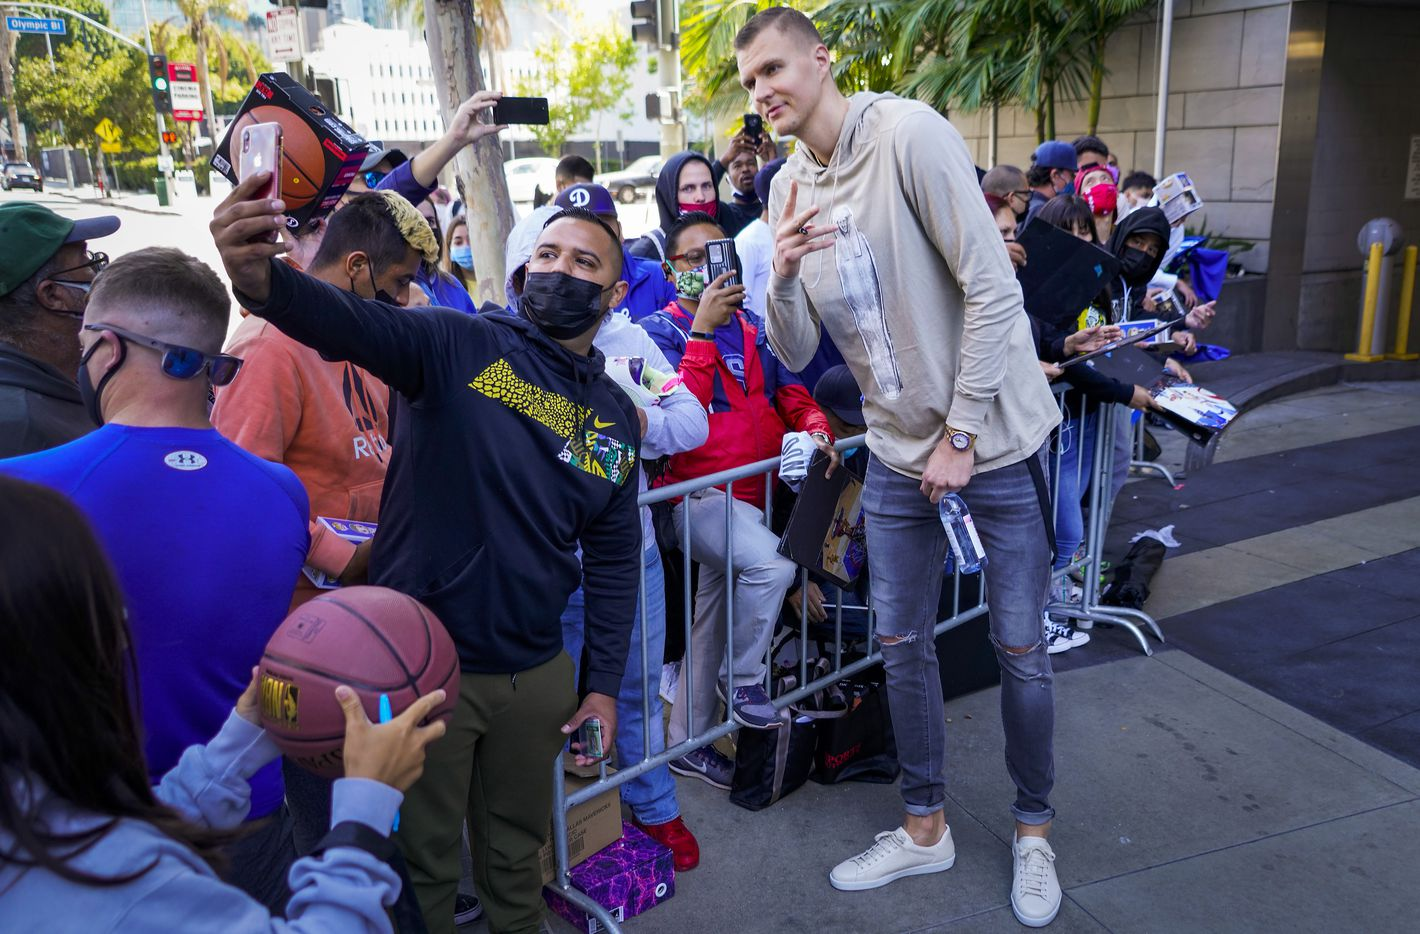 Dallas Mavericks center Kristaps Porzingis poses for a selfie with fans as the team leaves their hotel before Game 7 of an NBA playoff basketball series against the LA Clippers at the Staples Center on Sunday, June 6, 2021, in Los Angeles.